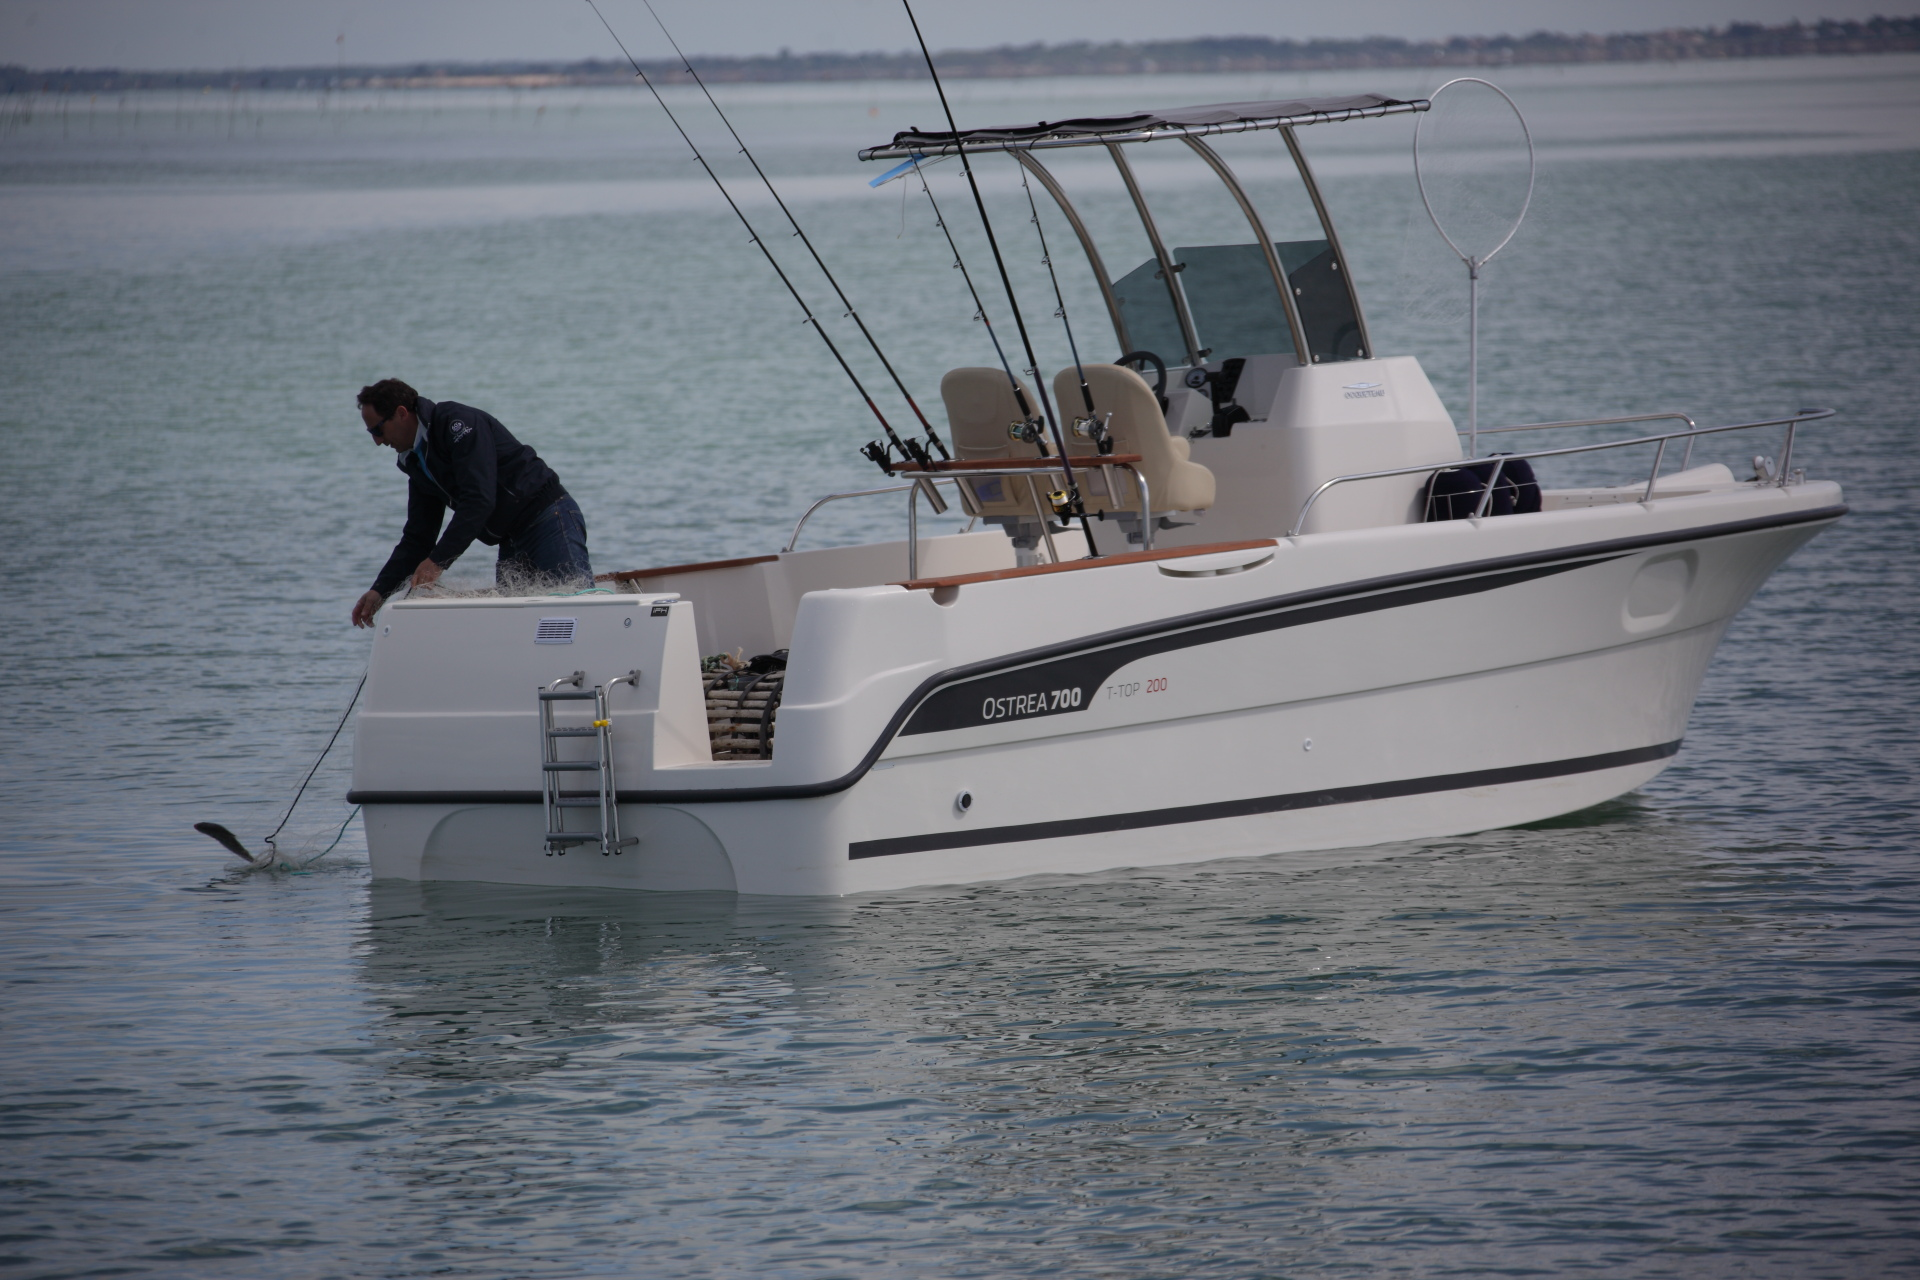 MoteurBoat and Hors-Bord magazine frances han testado el nuevo OSTREA 700 T-TOP